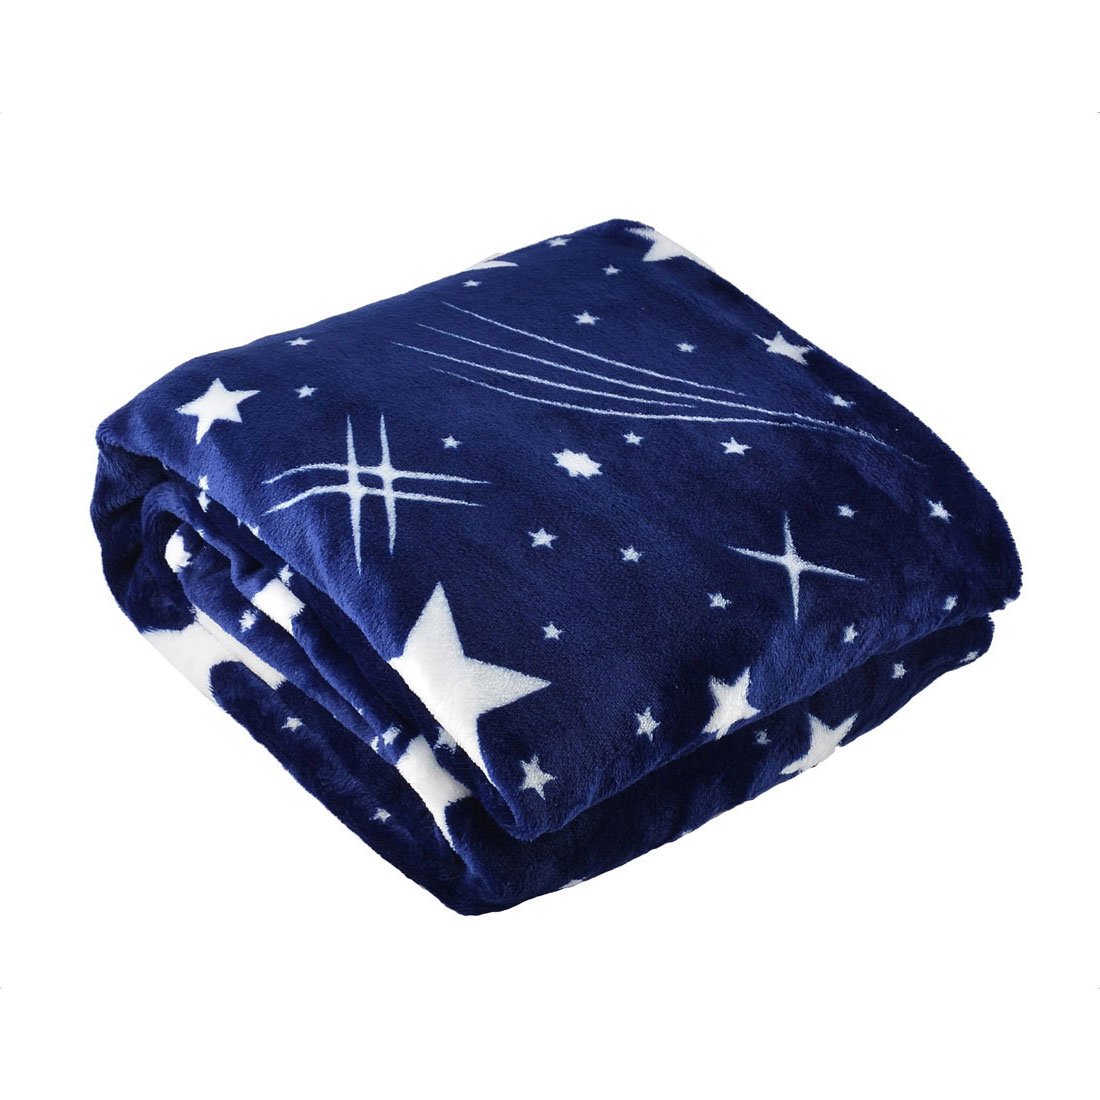 180 x 200cm Home Bedroom Warm Throw Blanket Rug Plush Fleece Bed Quilt Sofa Soft Star Pattern Dark Blue